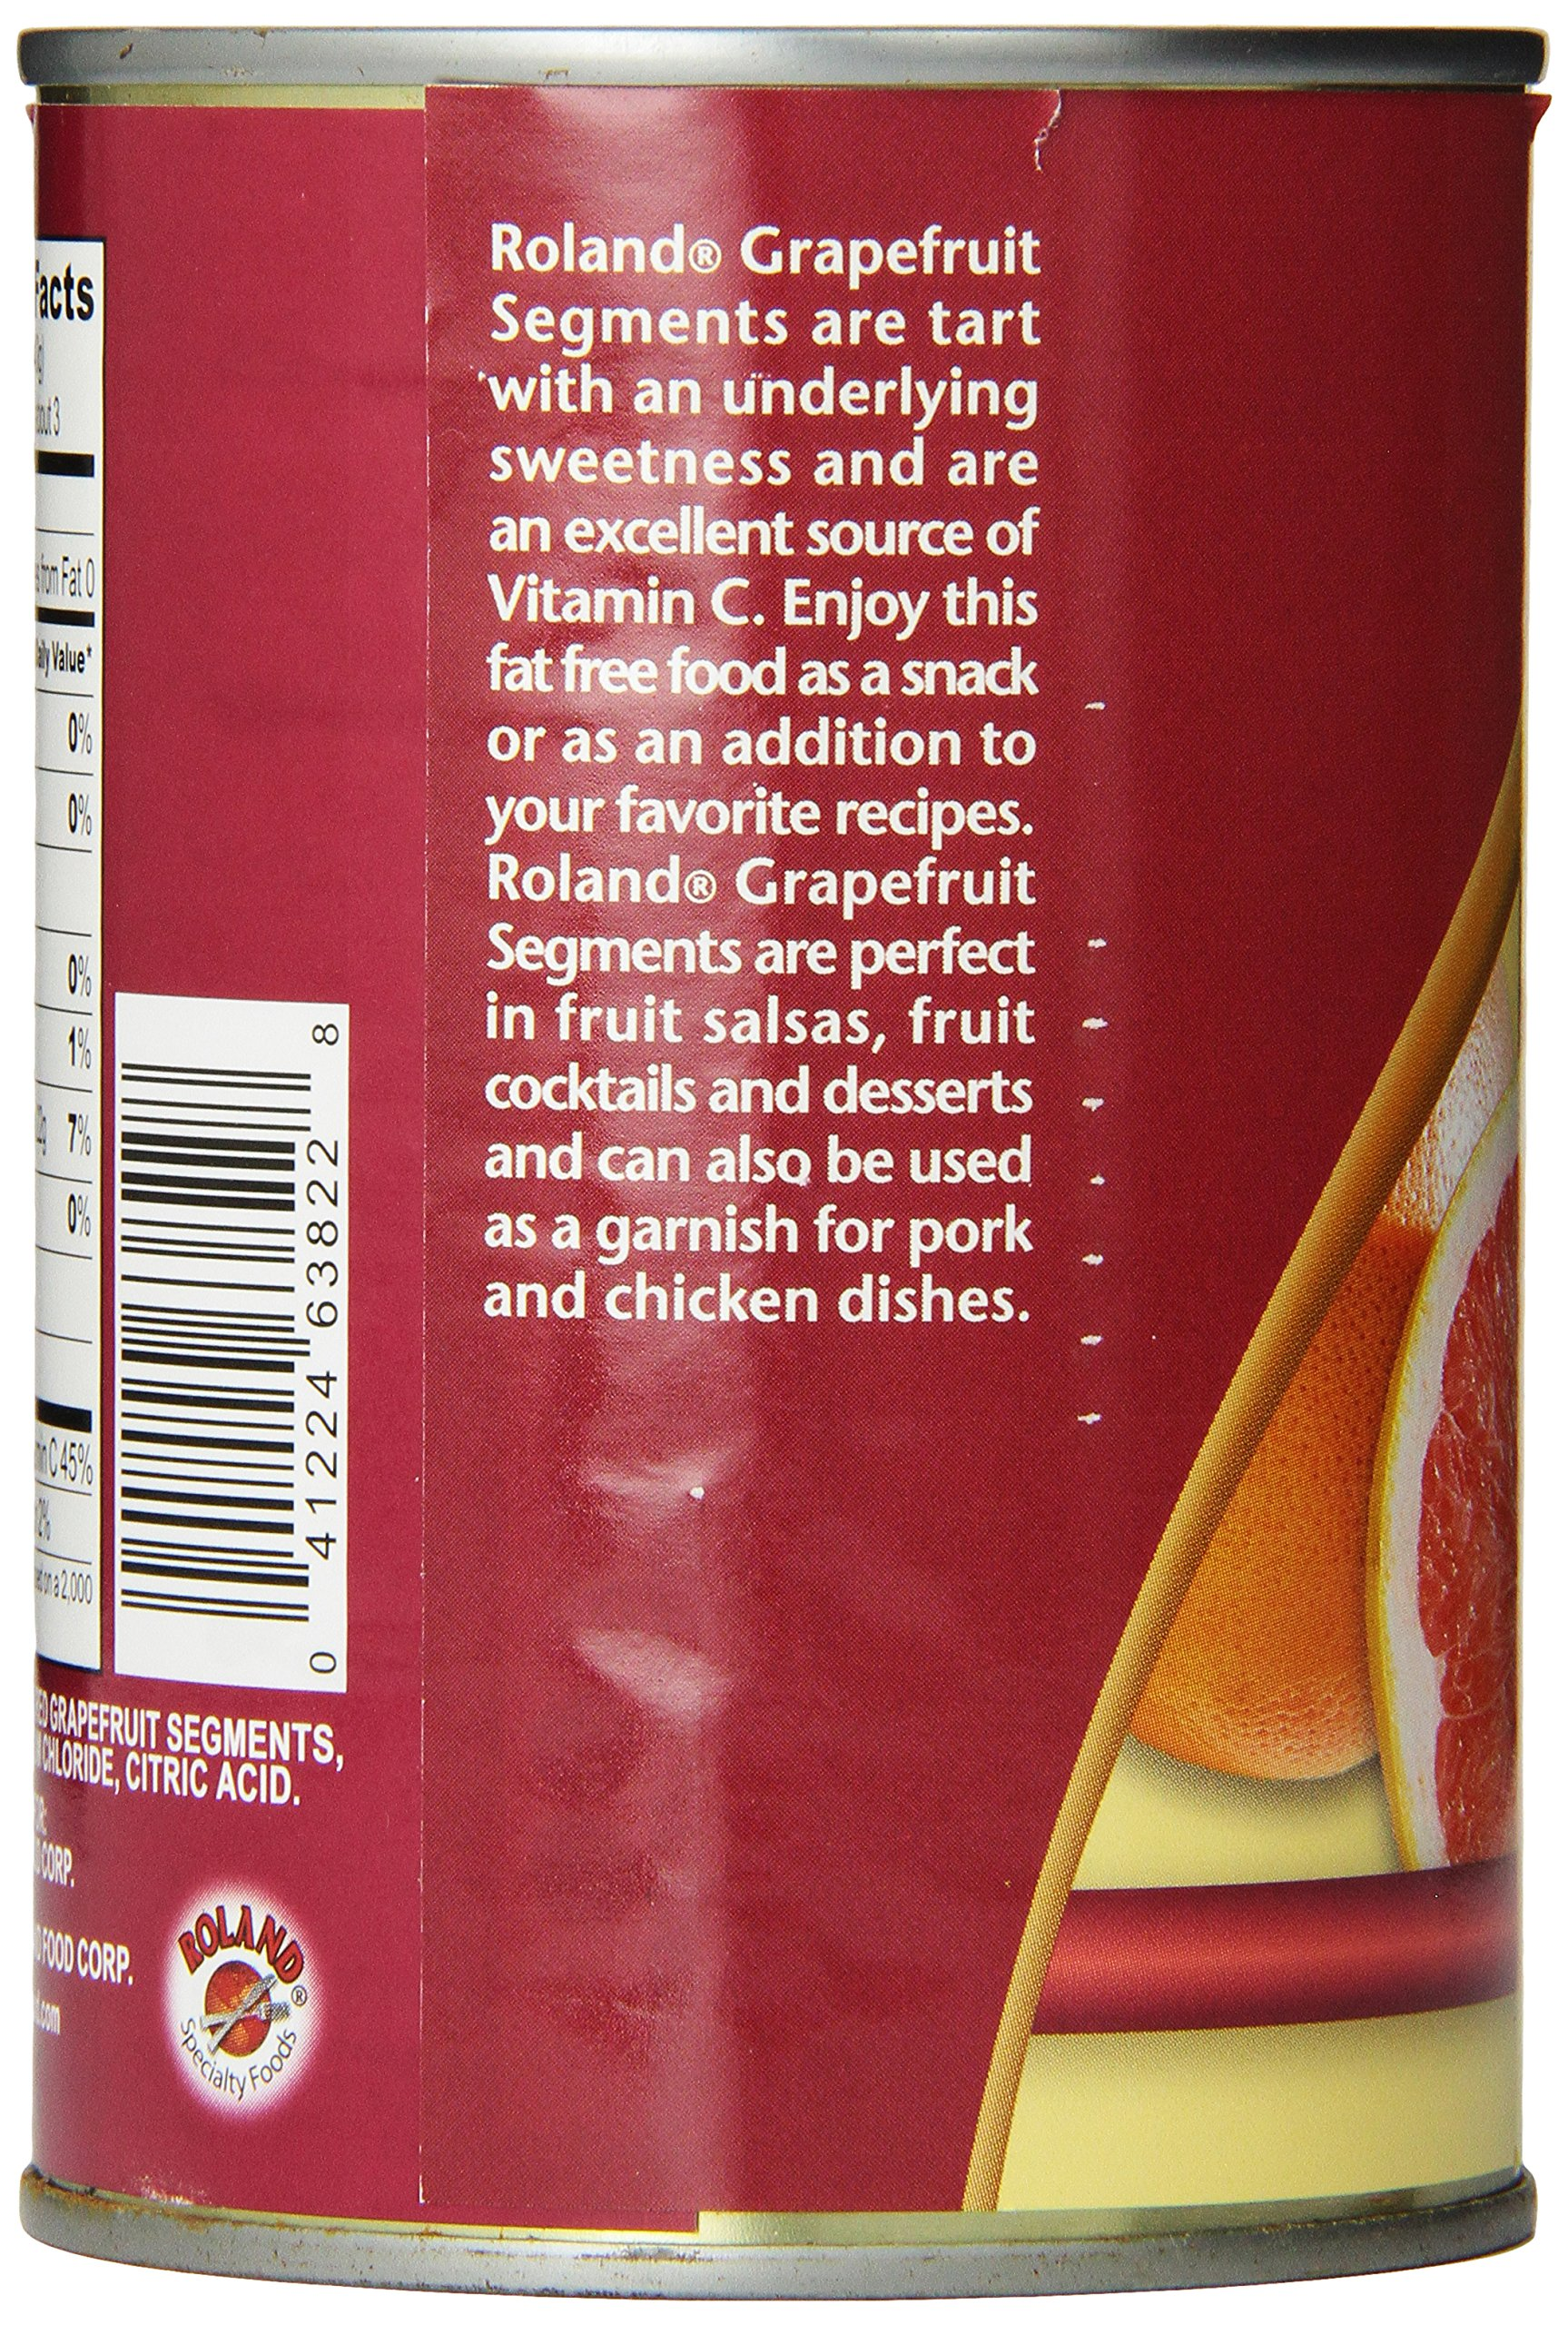 Roland Grapefruit Mix, Segments in Light Syrup, 14.5 Ounce (Pack of 12) by Roland (Image #4)